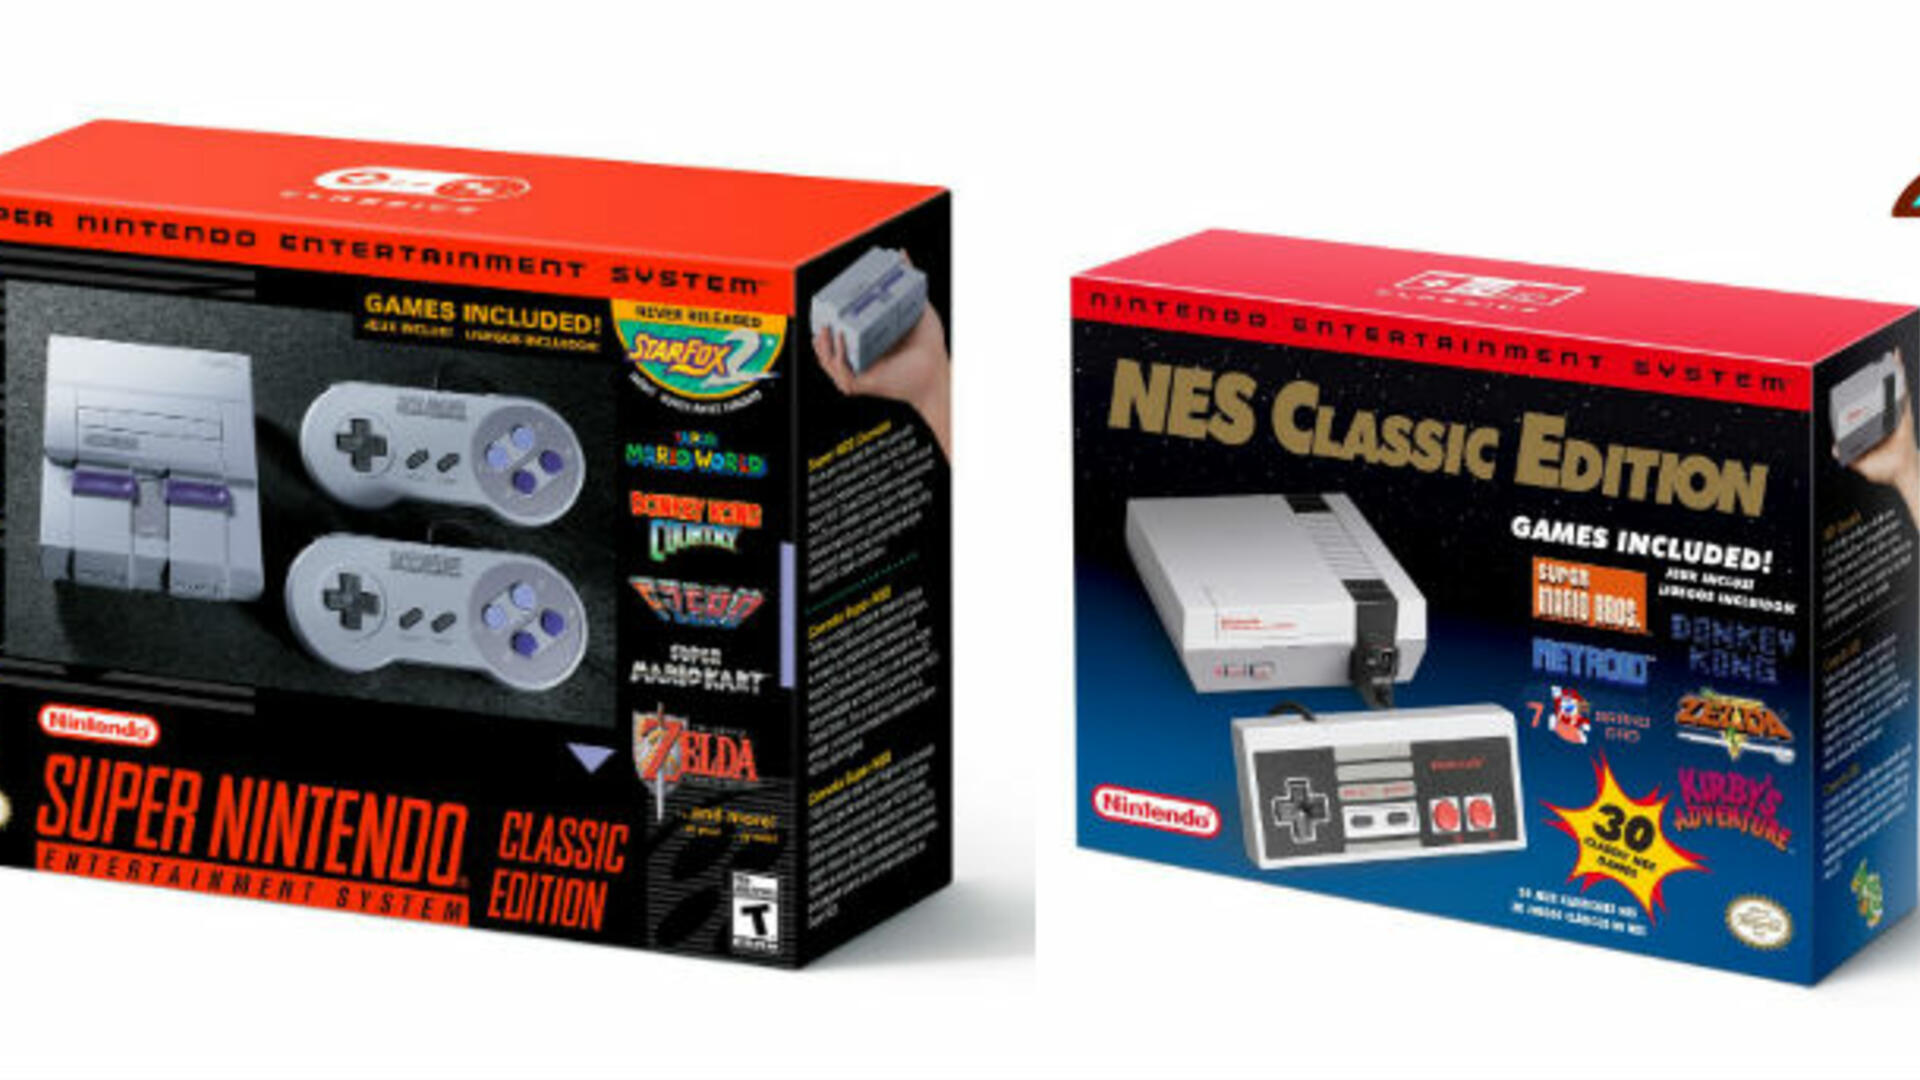 5 Reasons Why the SNES Classic Edition Is Way Better Than the NES Classic Edition